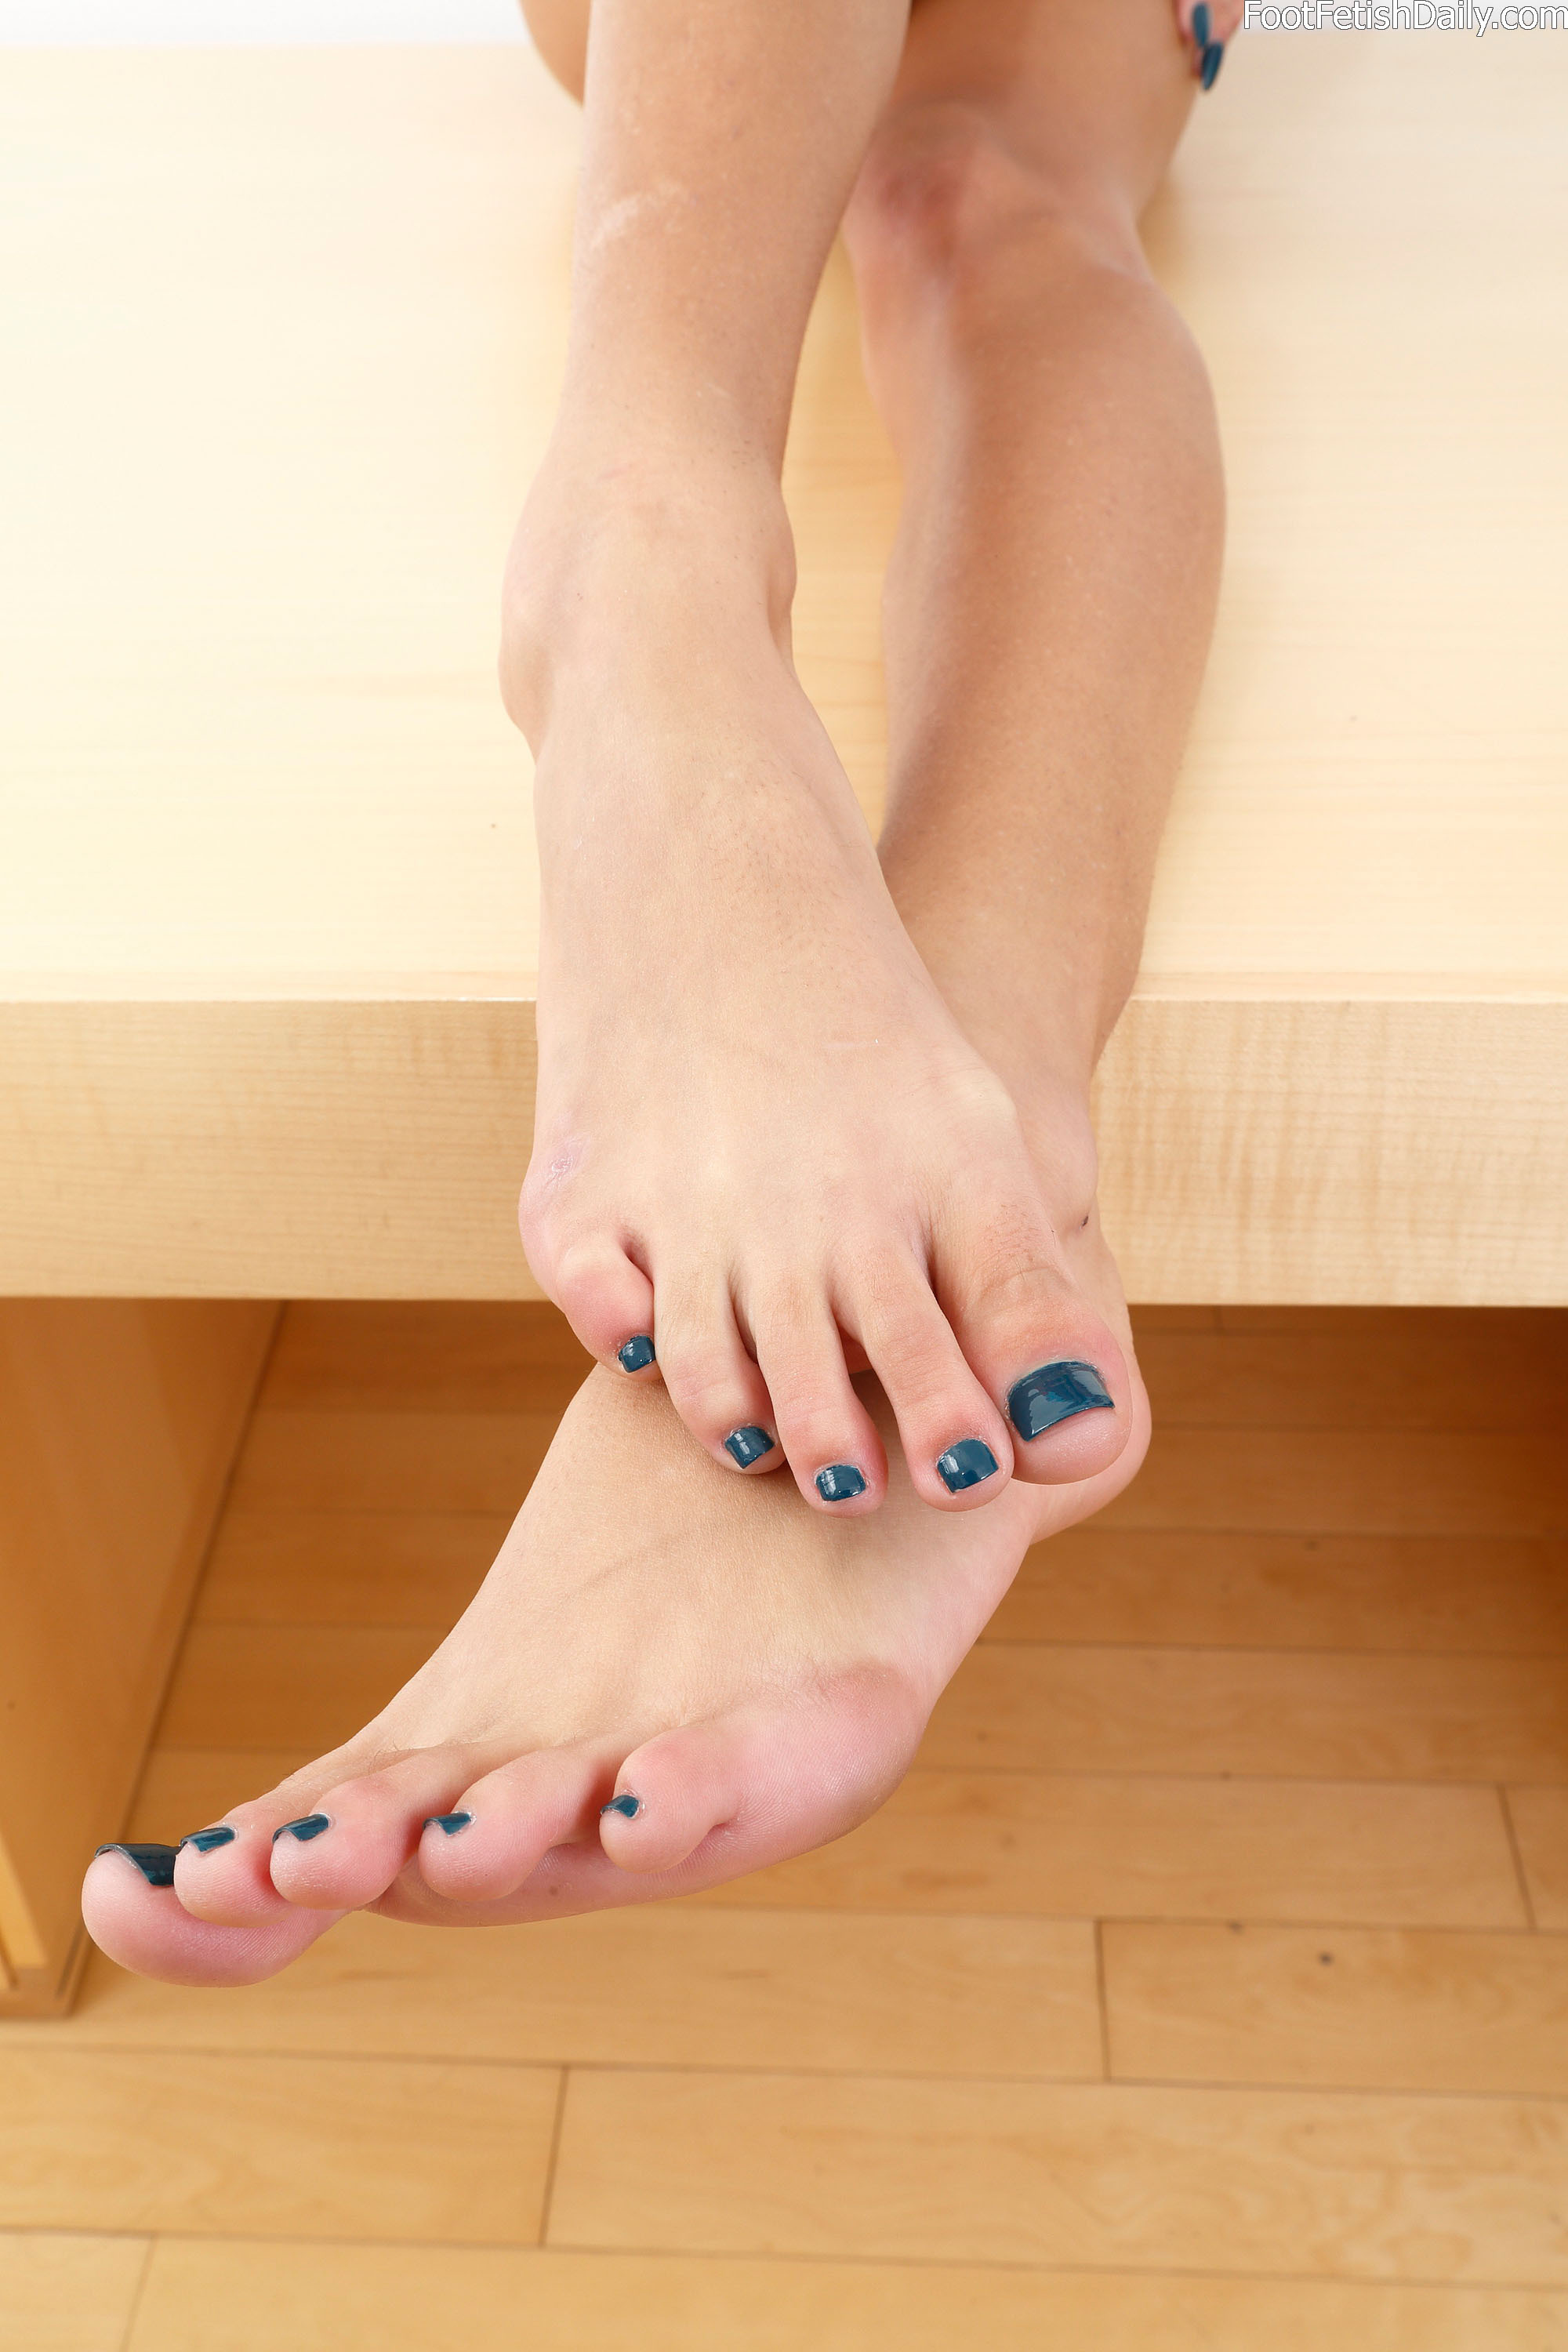 Janice griffith foot worship pics